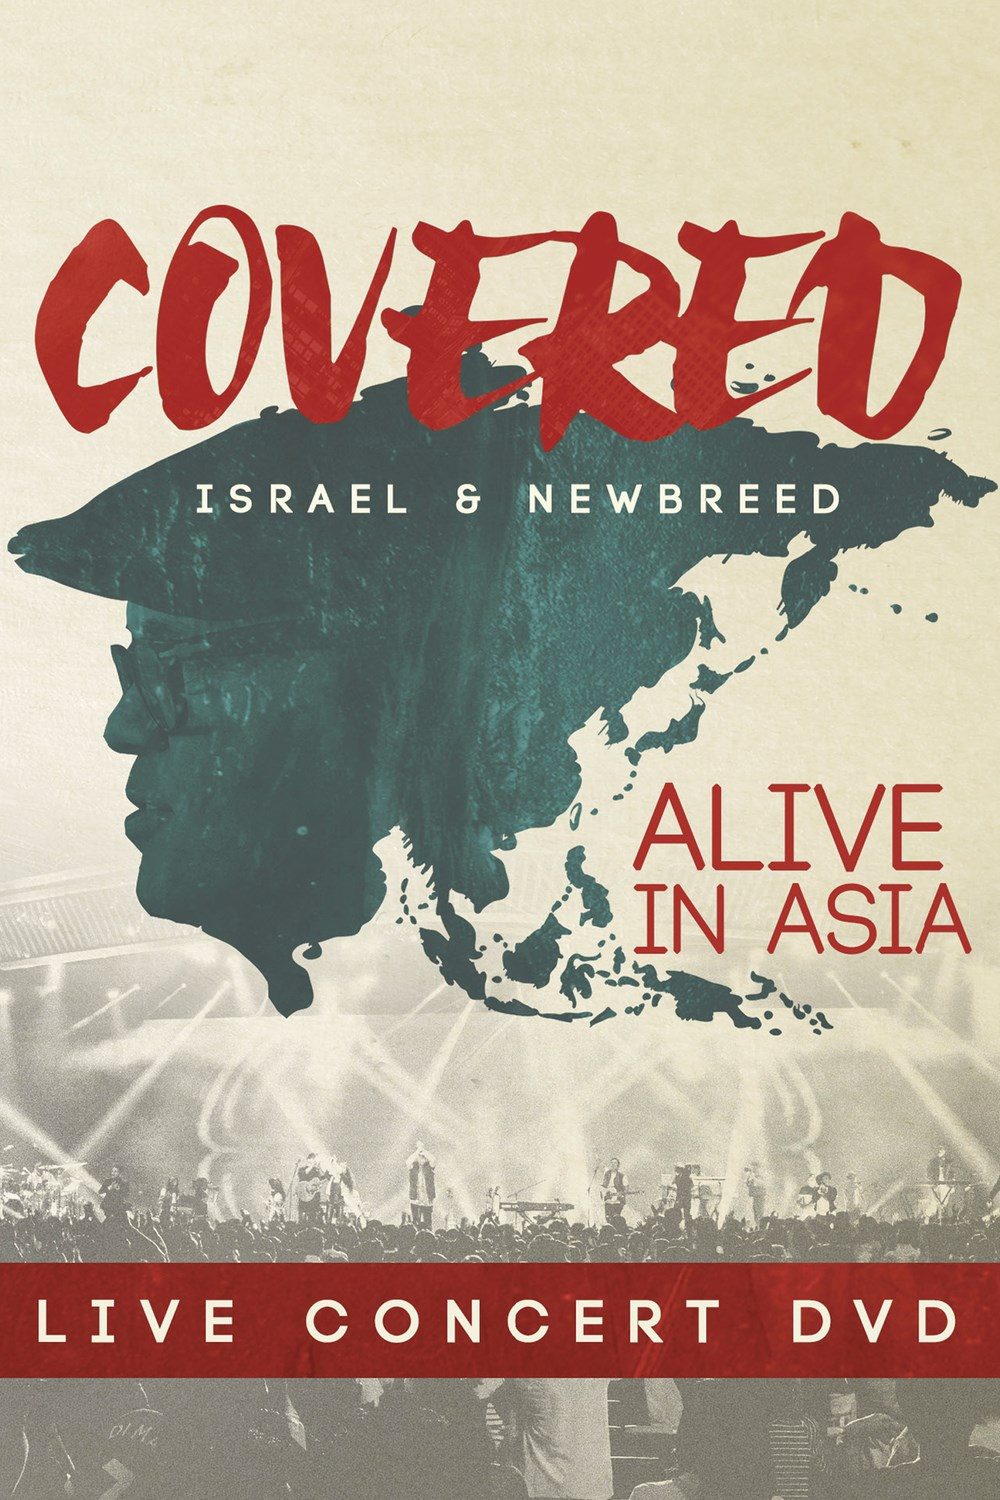 Israel and New Breed: Covered - Alive in Asia